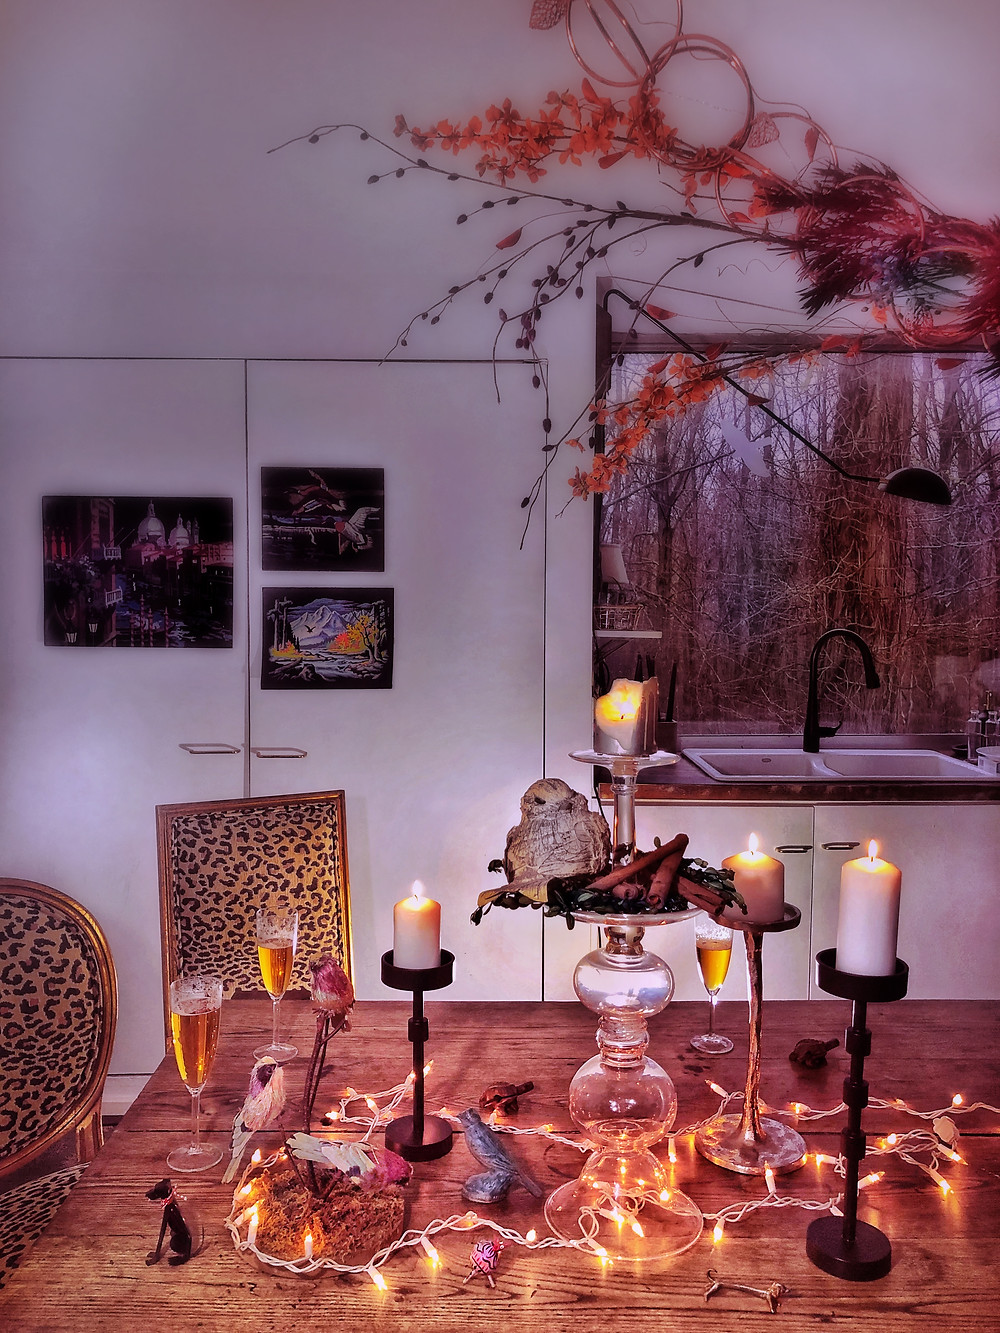 String lights, candles, animal figurines on the dining table